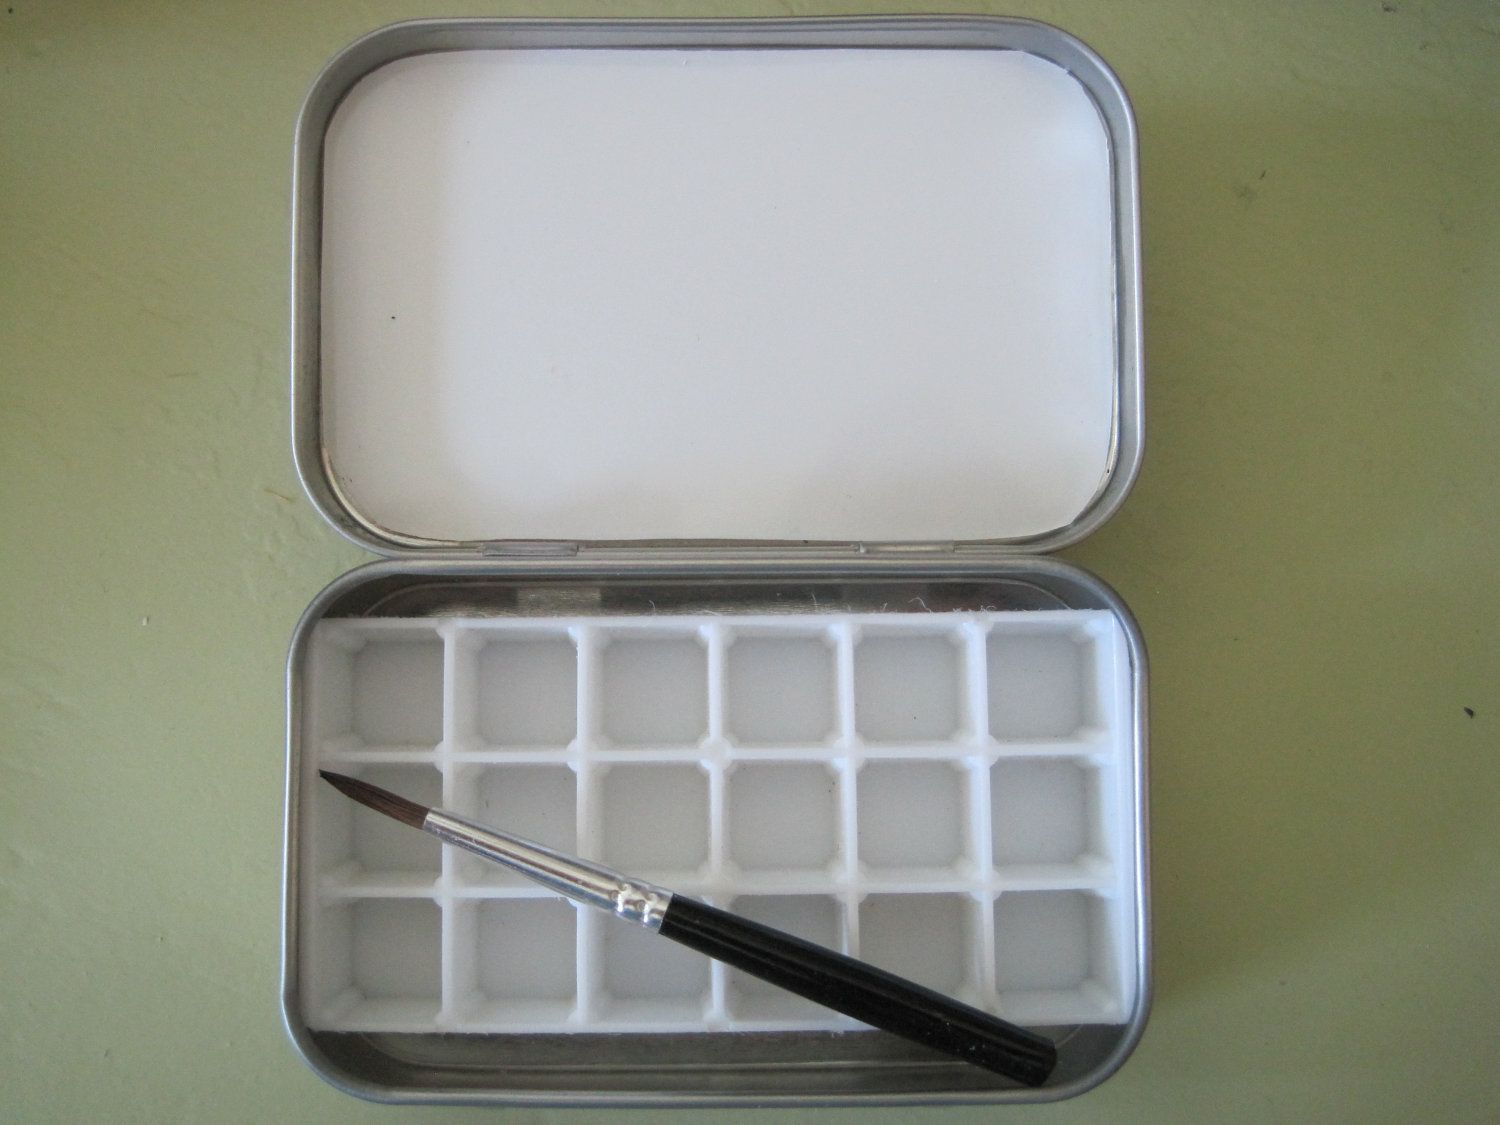 Small Watercolor Paint Tin Box W Brush For Travel By Kkubov